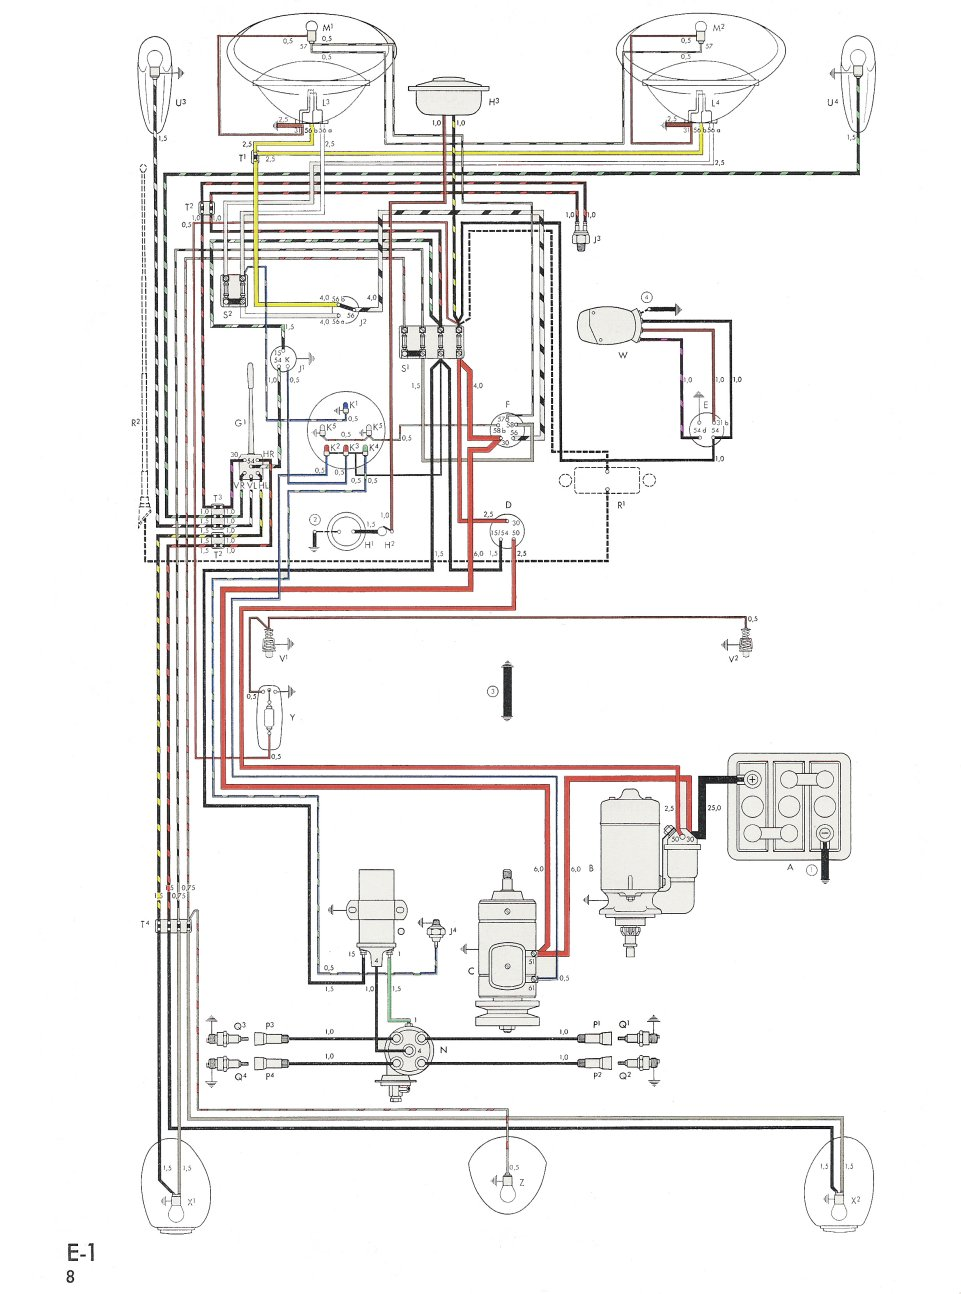 thesamba com type 1 wiring diagrams mercedes radio wiring harness wiring diagram for a 1950 dodge truck